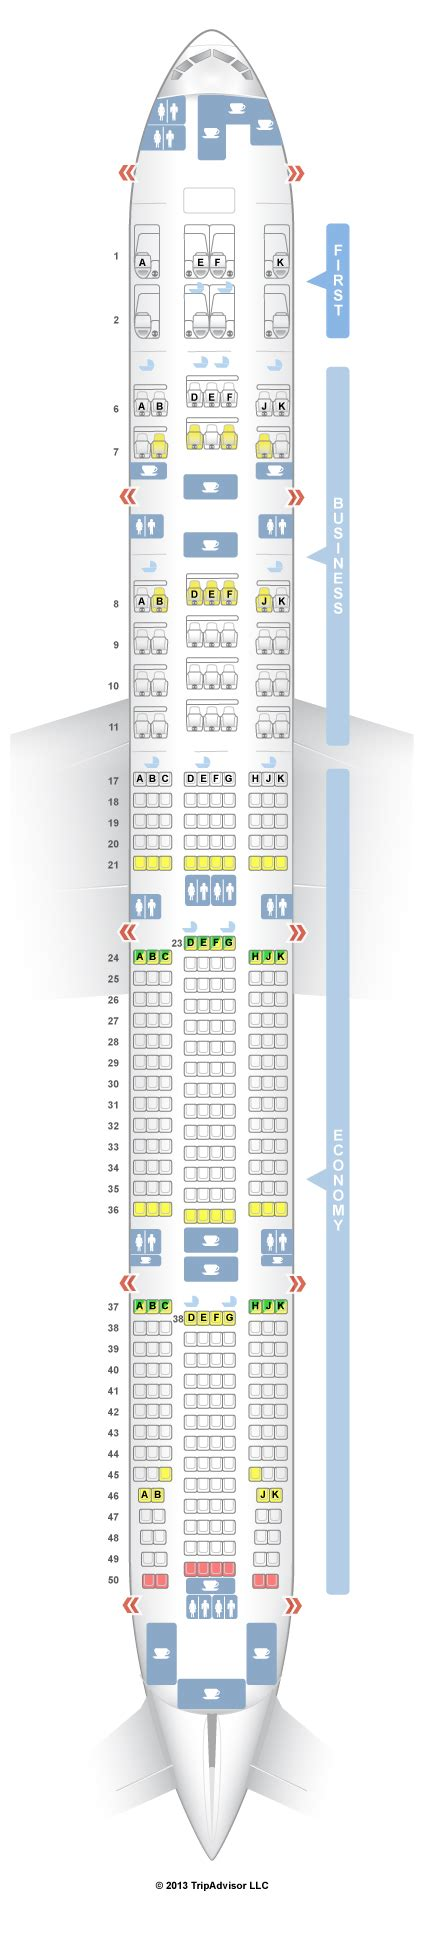 plan siege boeing 777 300er seating plan boeing 777 300er cathay pacific